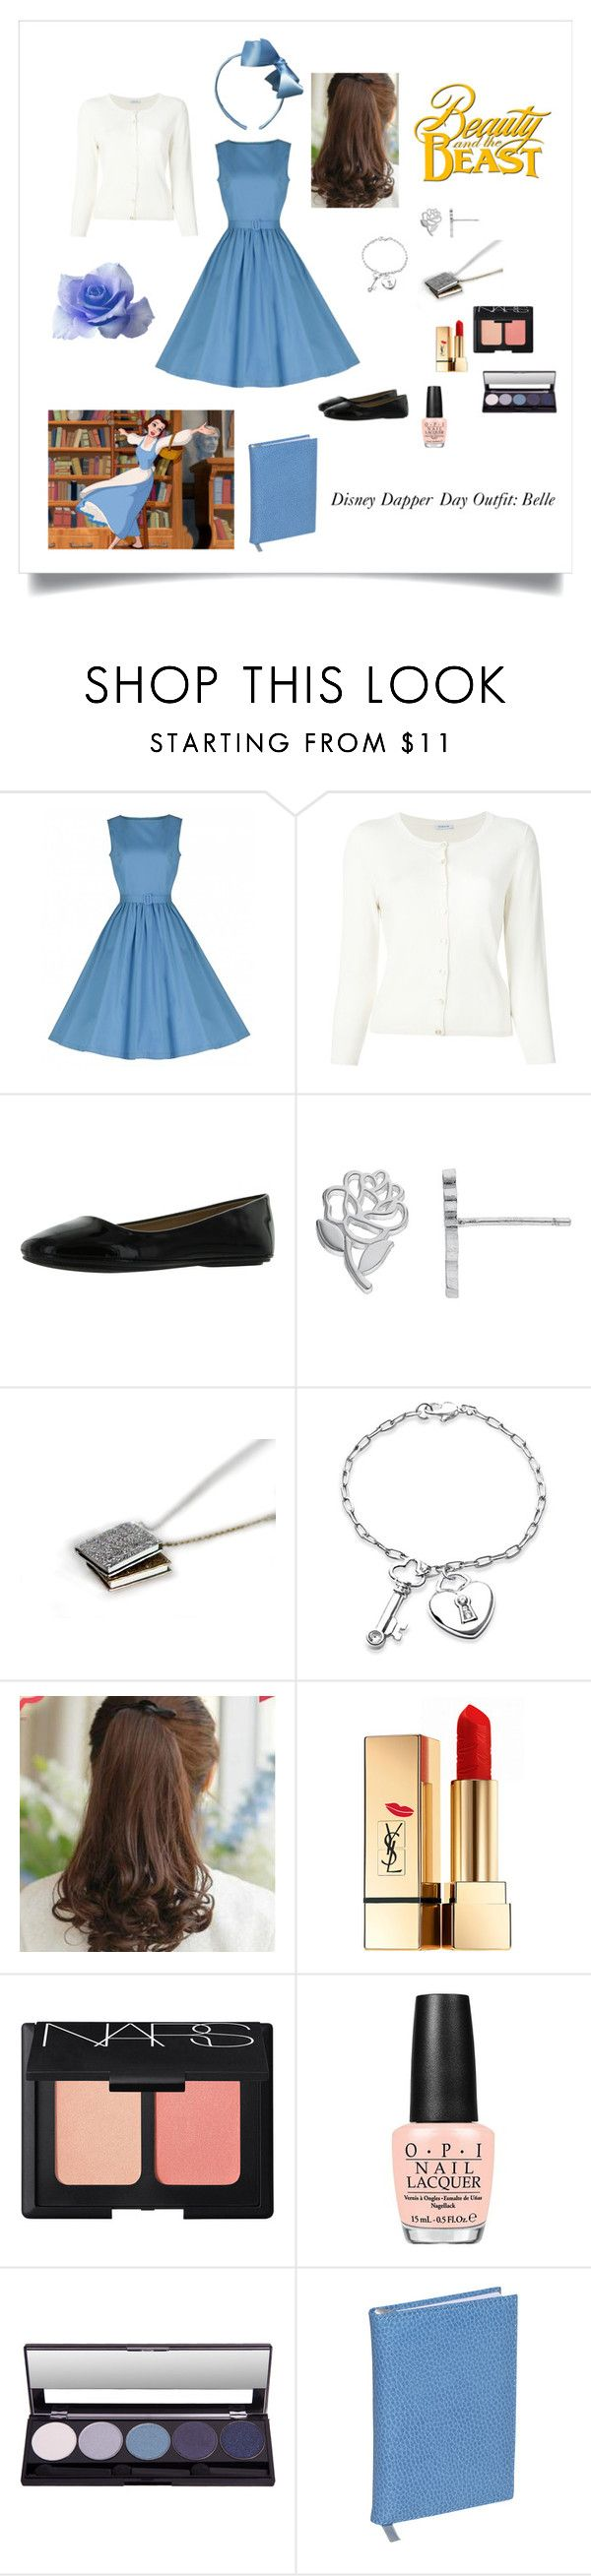 """Disney Dapper Day Outfit: Belle"" by belle-lupin ❤ liked on Polyvore featuring P.A.R.O.S.H., Disney, Bling Jewelry, Pin Show, Yves Saint Laurent, NARS Cosmetics, OPI and Budd Leather"